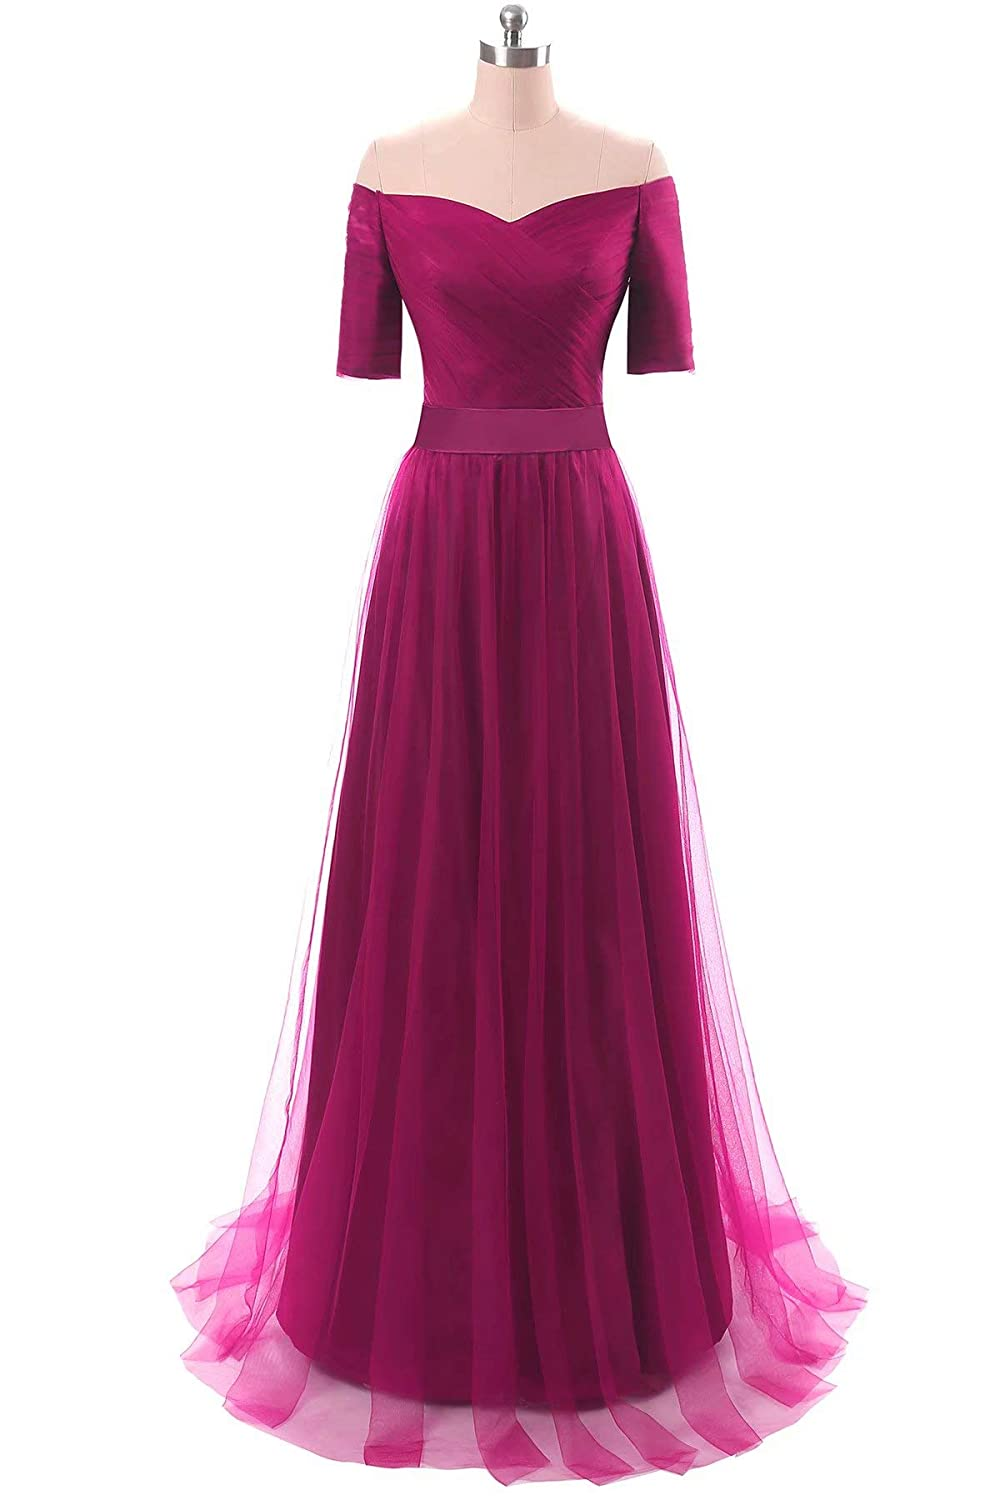 Fuchsia Honeywedding Half Sleeves V Neck Formal Evening Dresses Long Tulle Party Prom Gown